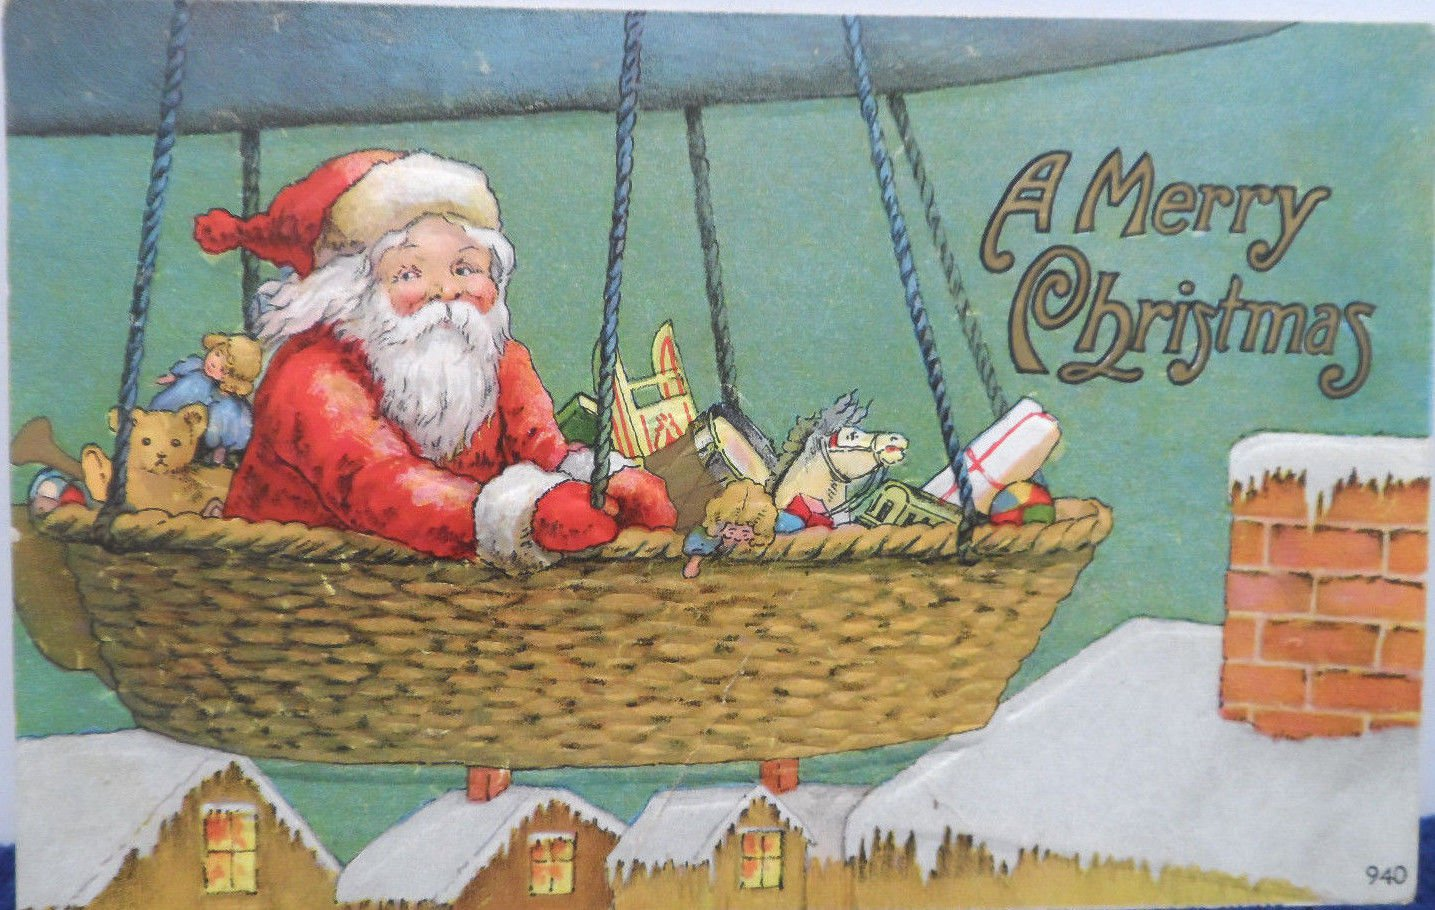 Antique Christmas Postcard Santa Claus Flying a Blimp Delivering Toys Posted